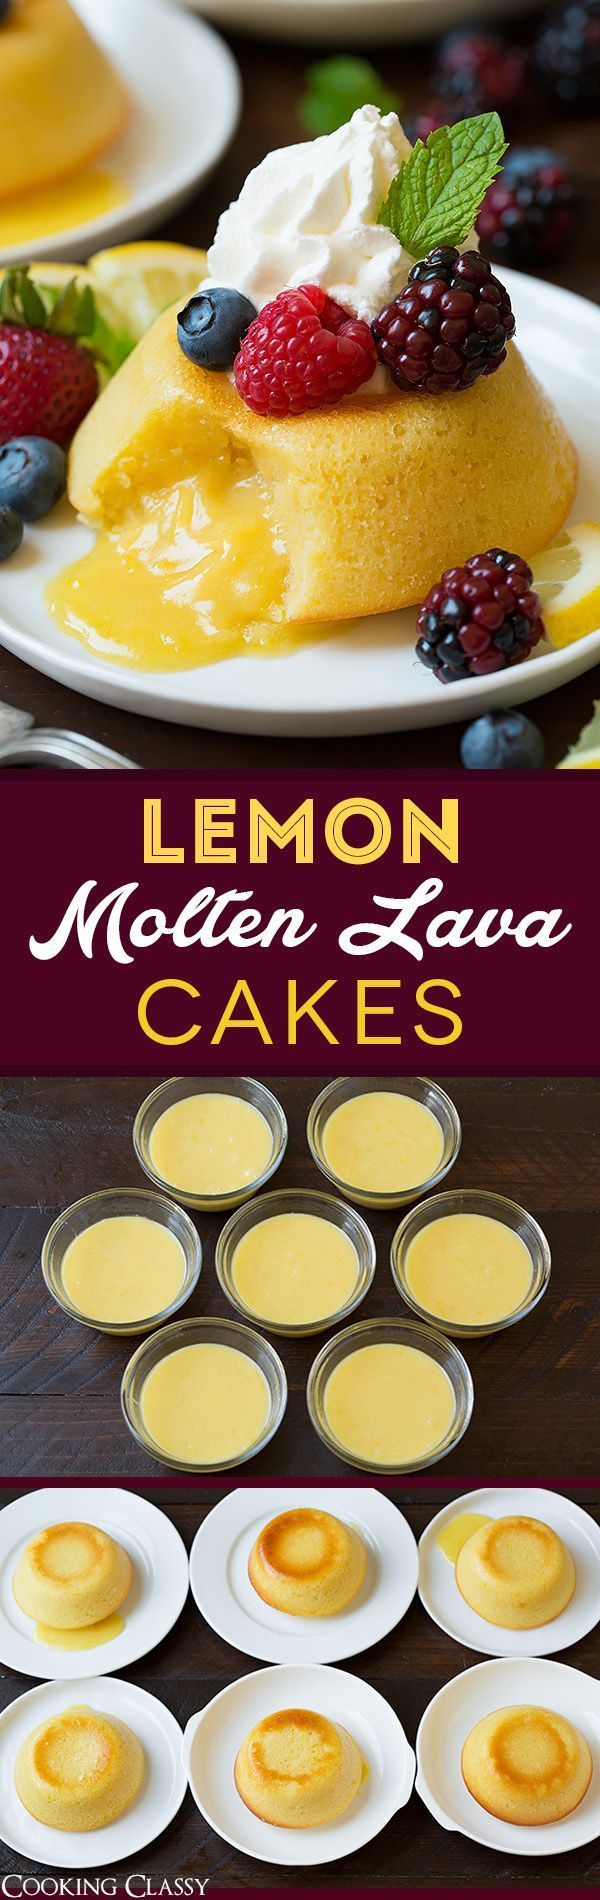 Lemon Molten Lava Cakes - a summertime MUST! Made with white chocolate and lemon curd. Easy to make and purely irresistible!